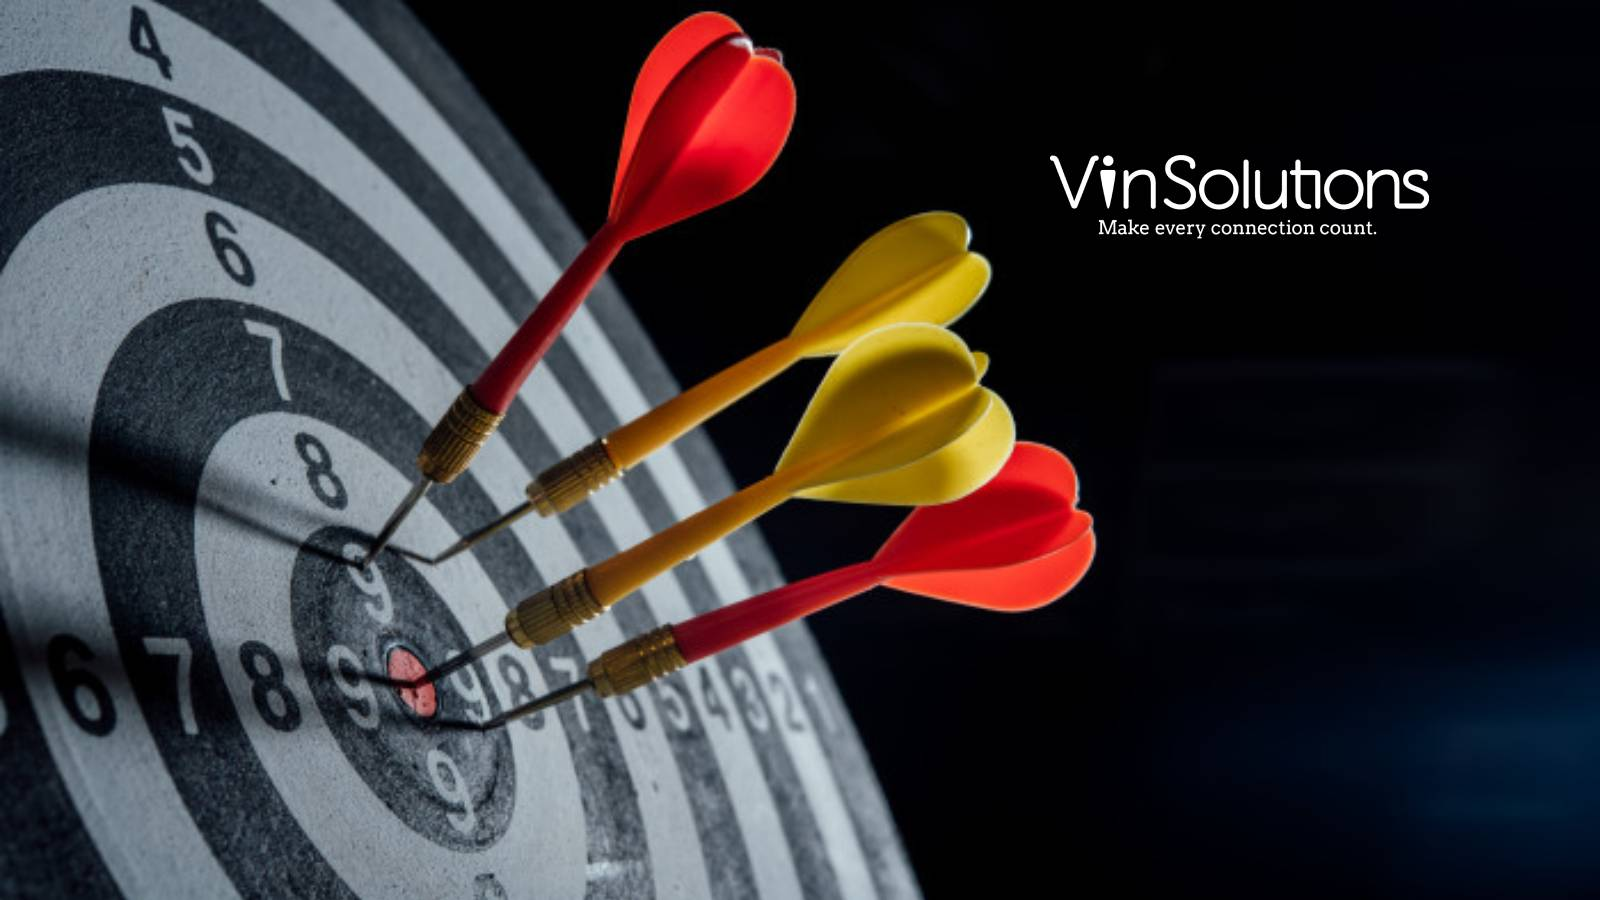 VinSolutions Introduces Its Automotive Marketing Platform to Help Dealers Take Charge of Their Campaigns 1